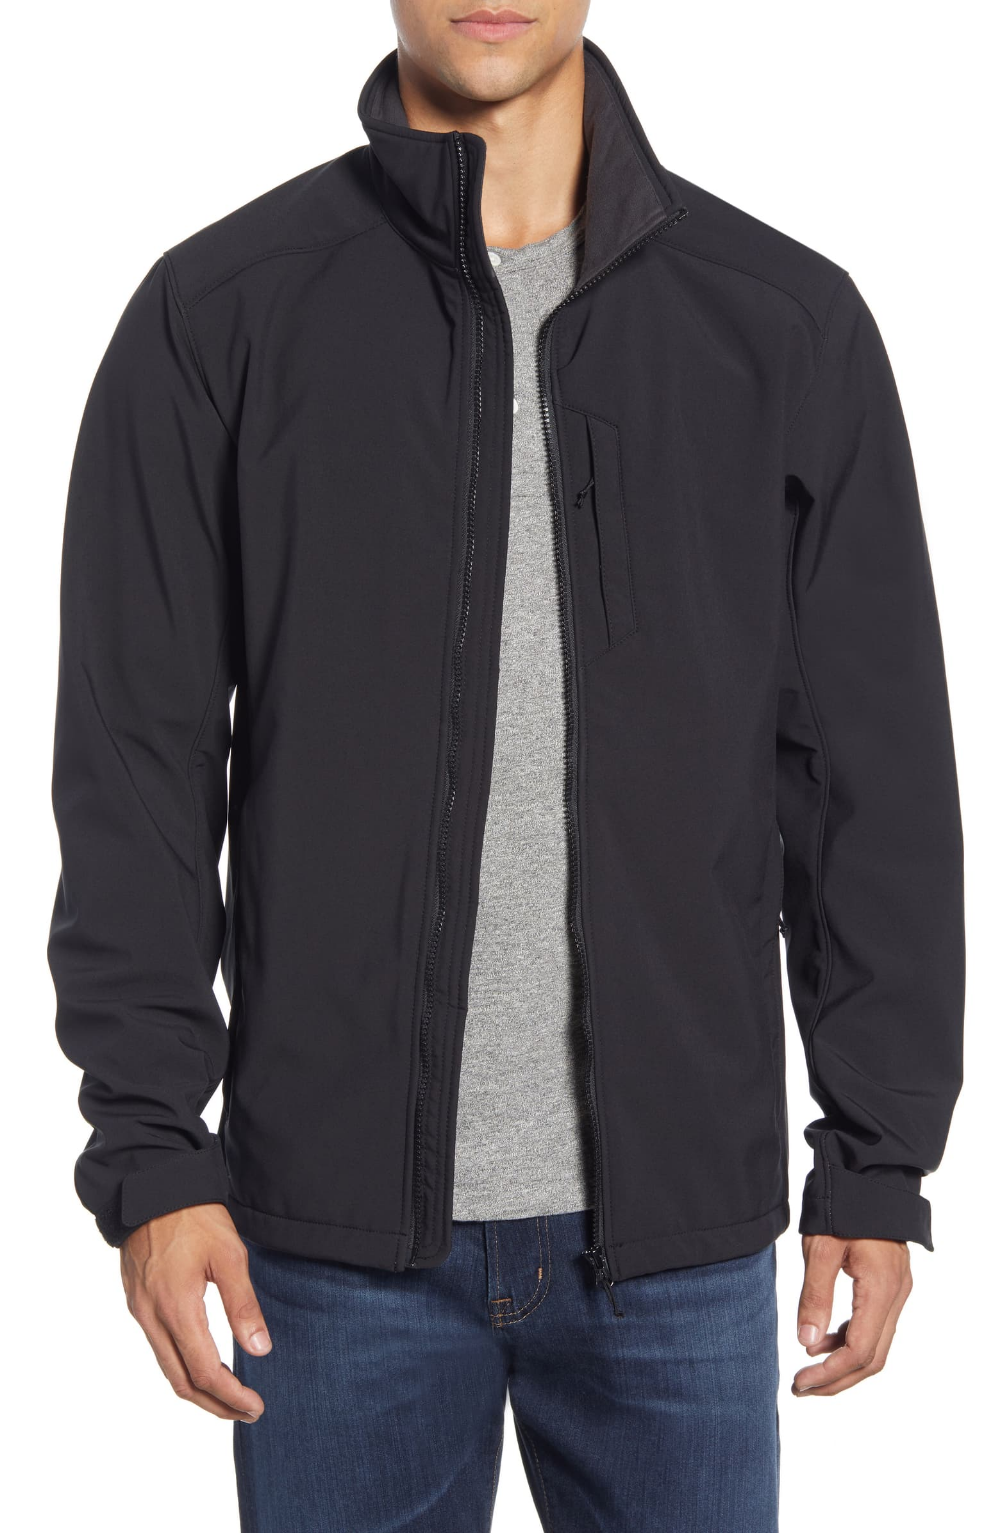 Helly Hansen Paramount Water Resistant Softshell Jacket in